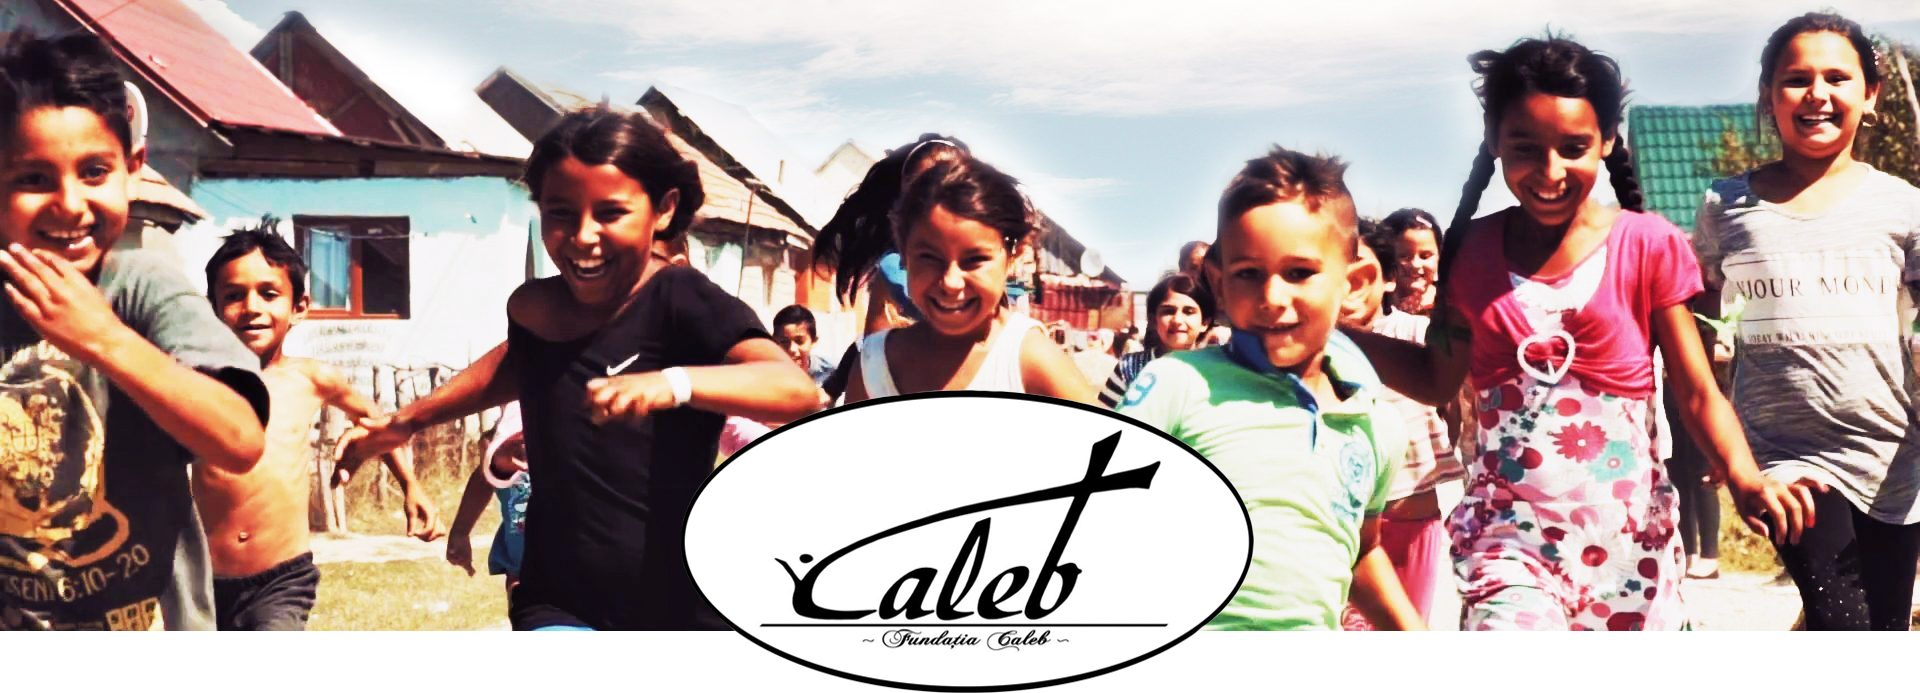 Caleb  Foundation – bringing hope to the hopeless